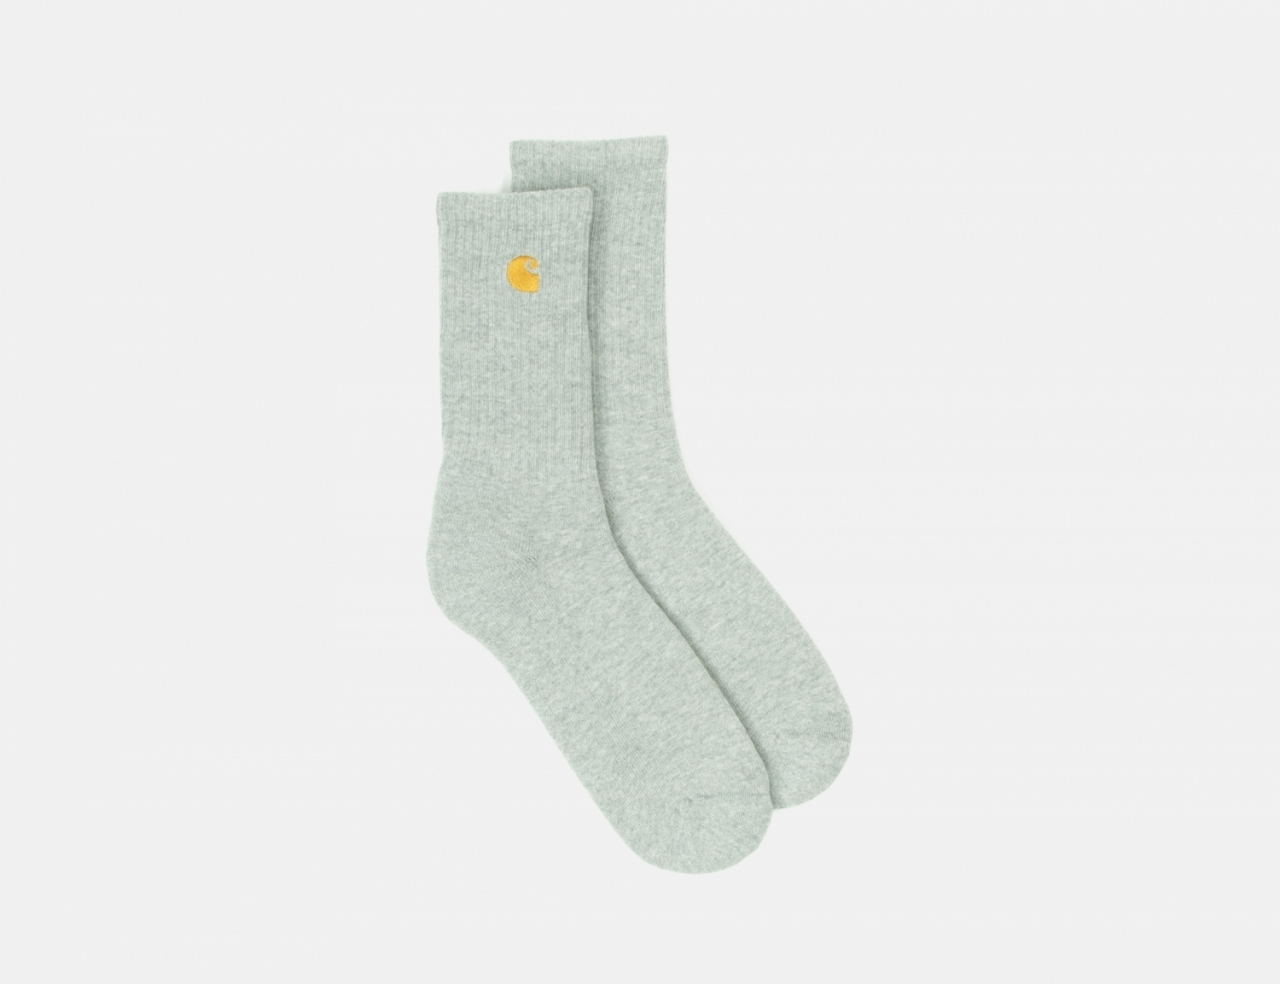 Carhartt WIP Chase Socken - Grey Heather / Gold